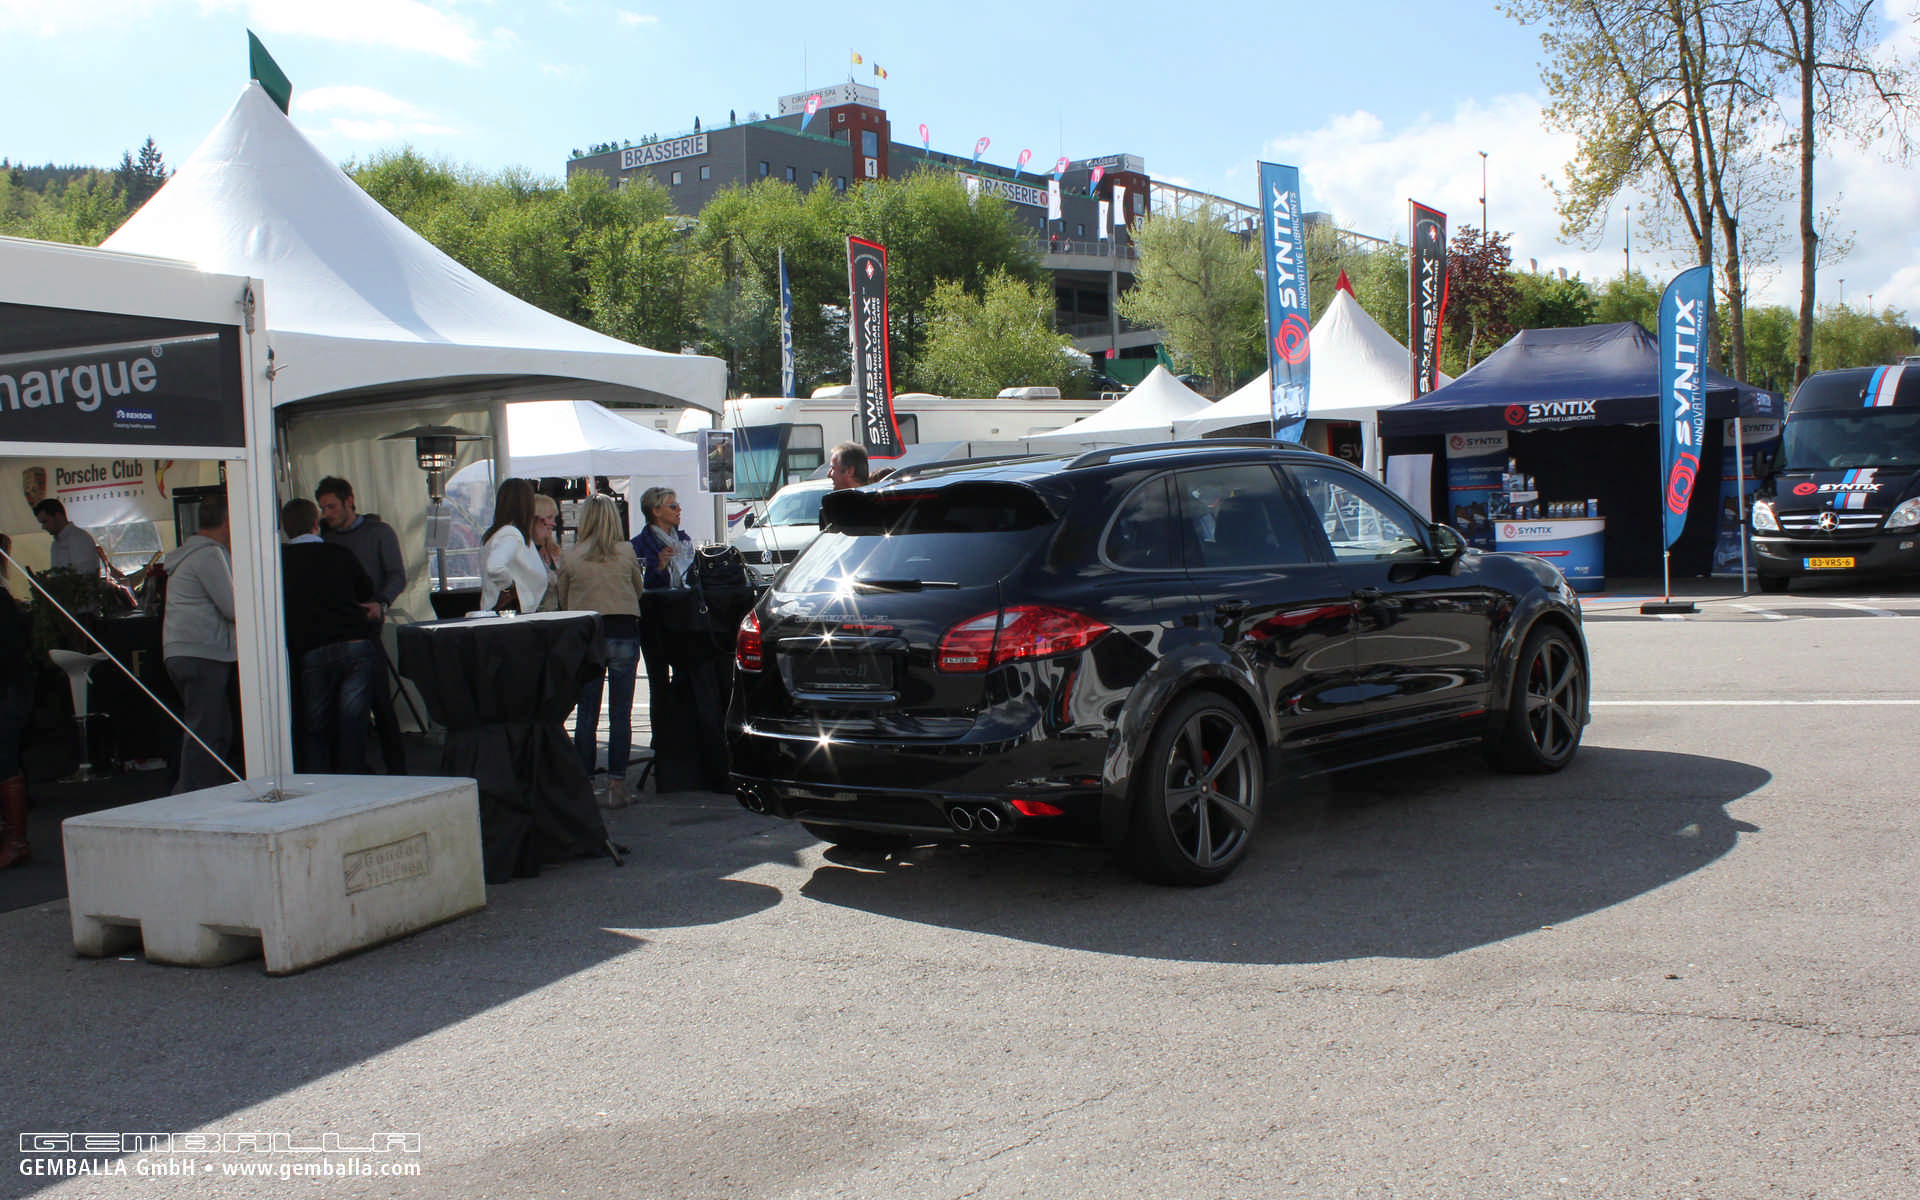 gemballa_gmbh_event_spa_2013_018